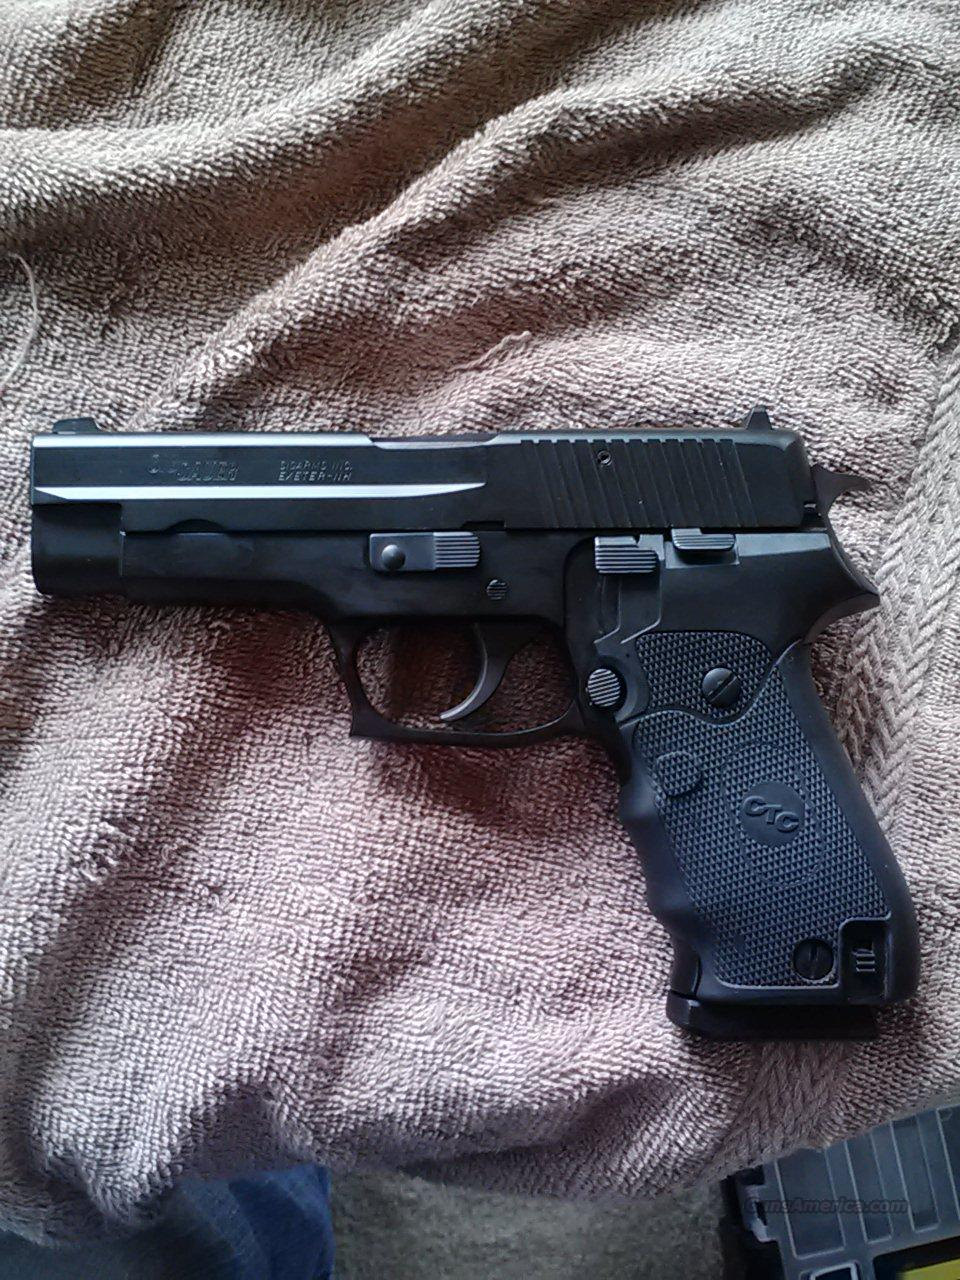 Sig P220 w/ 3 mags and crimson trace laser grip  Guns > Pistols > Sig - Sauer/Sigarms Pistols > P220